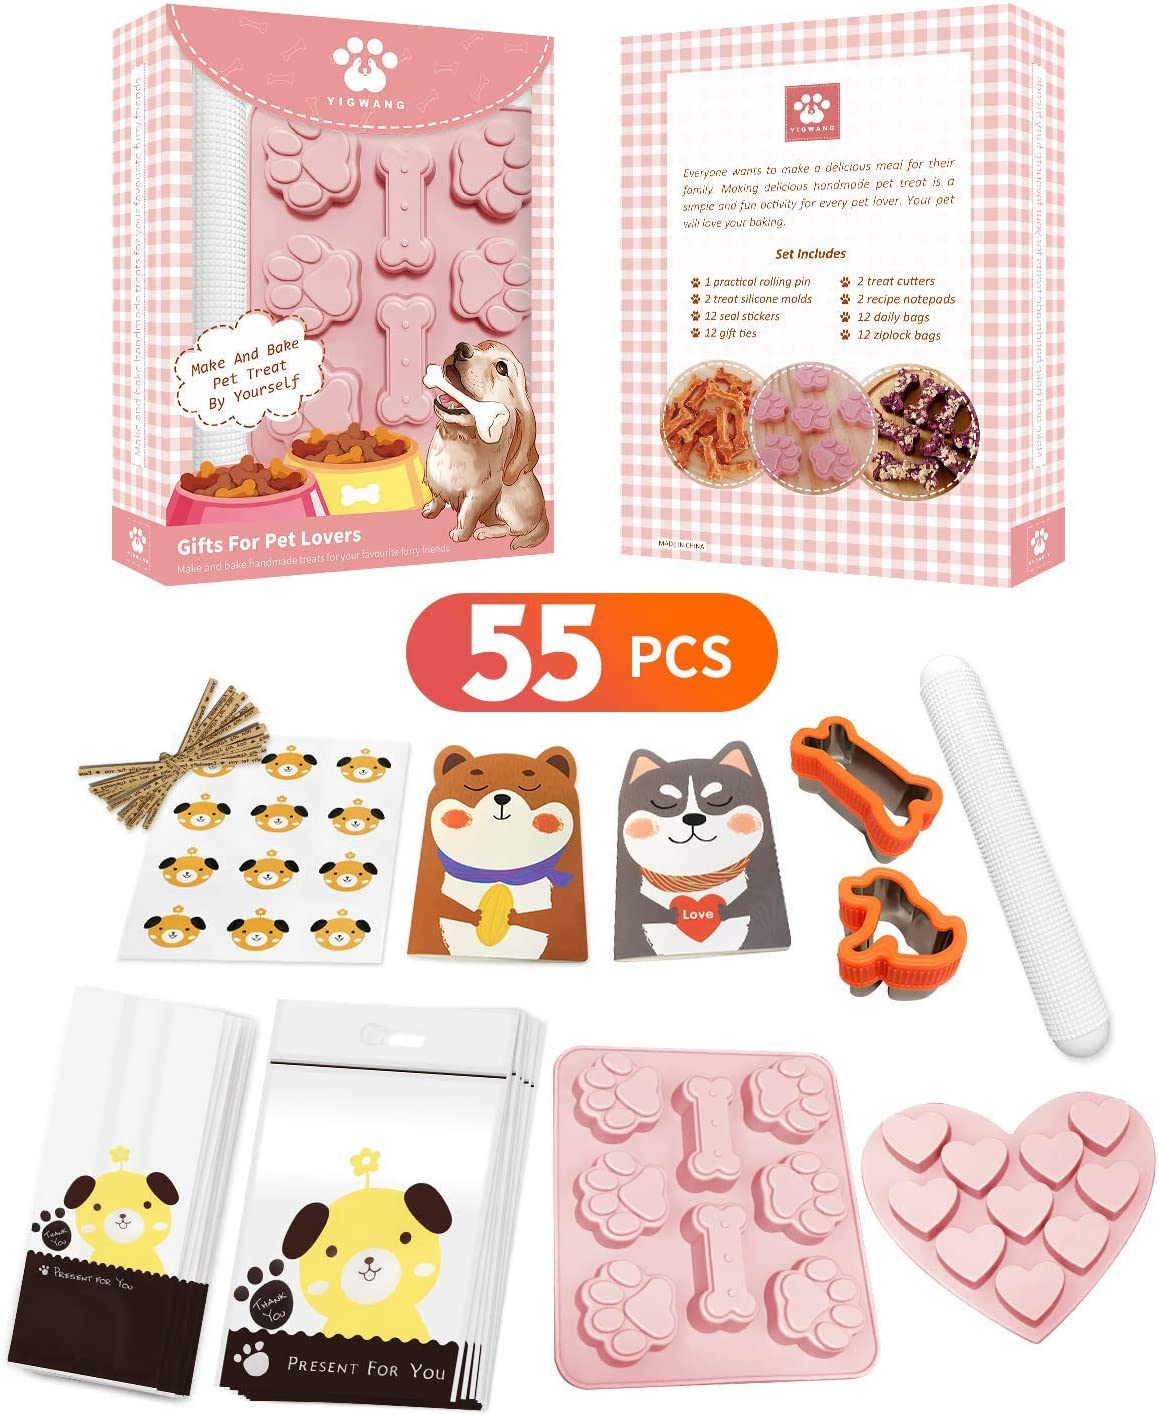 YIGWANG 55 Pcs Dog Lovers Gifts, Make Your Own Dog Treats Kit, Including Dog Bone Cookie Cutter and Silicone Molds, Dog Treat Bags, etc.